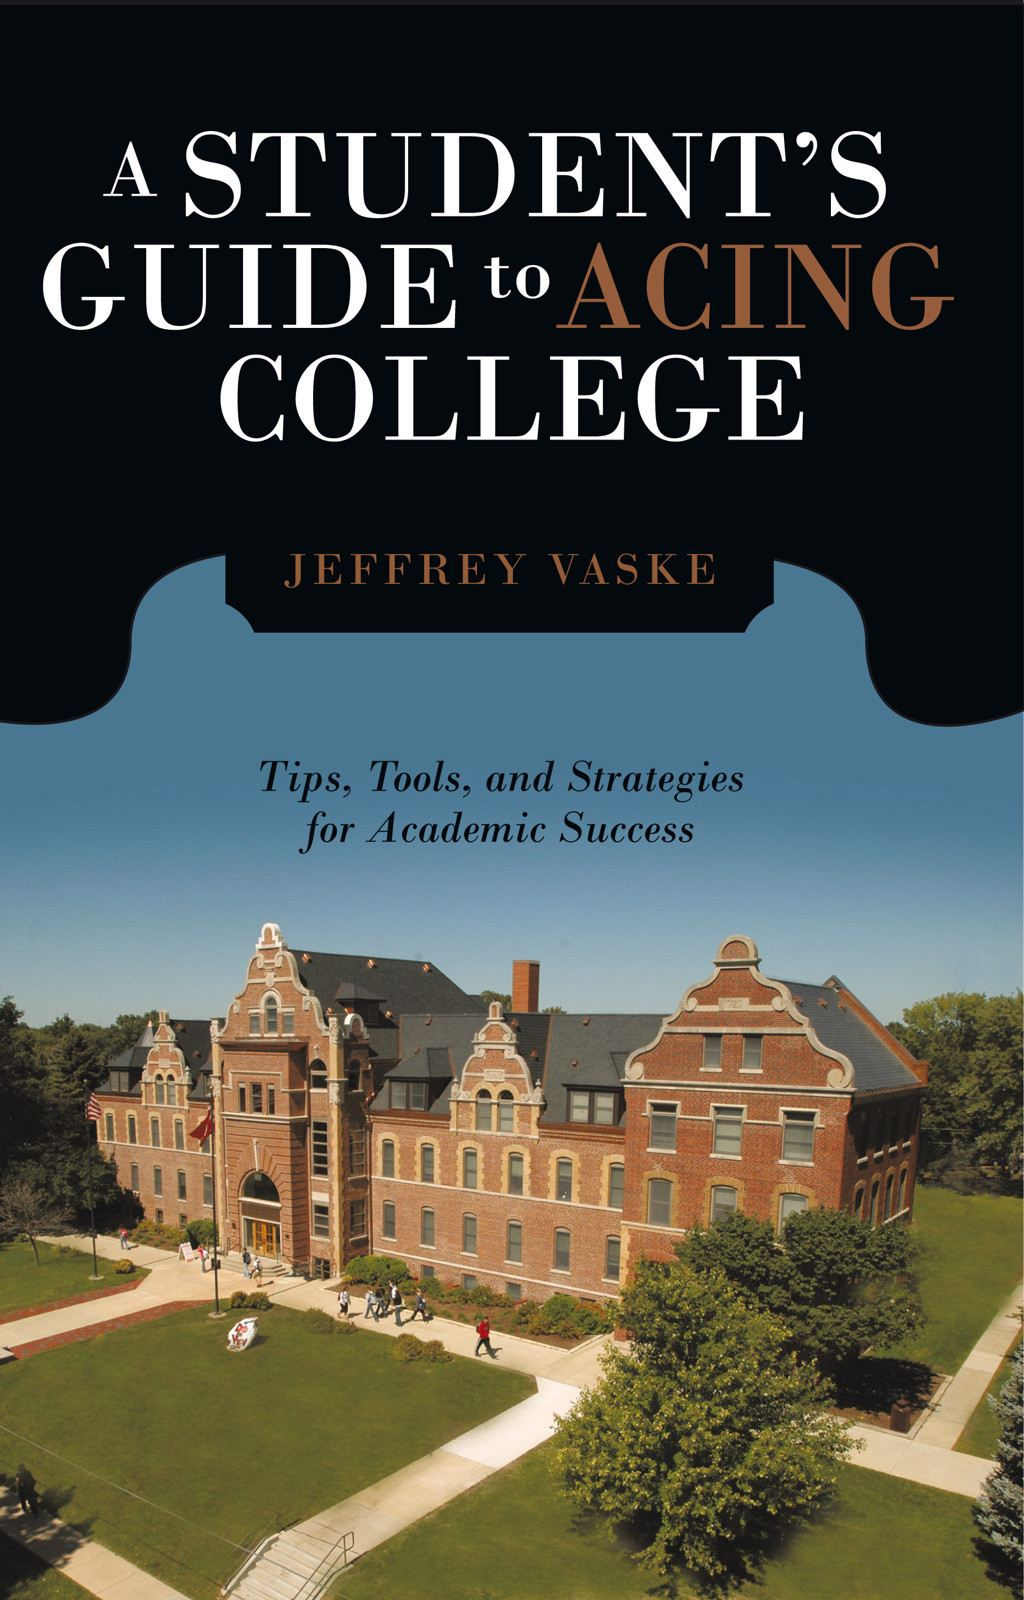 A Students Guide to Acing College